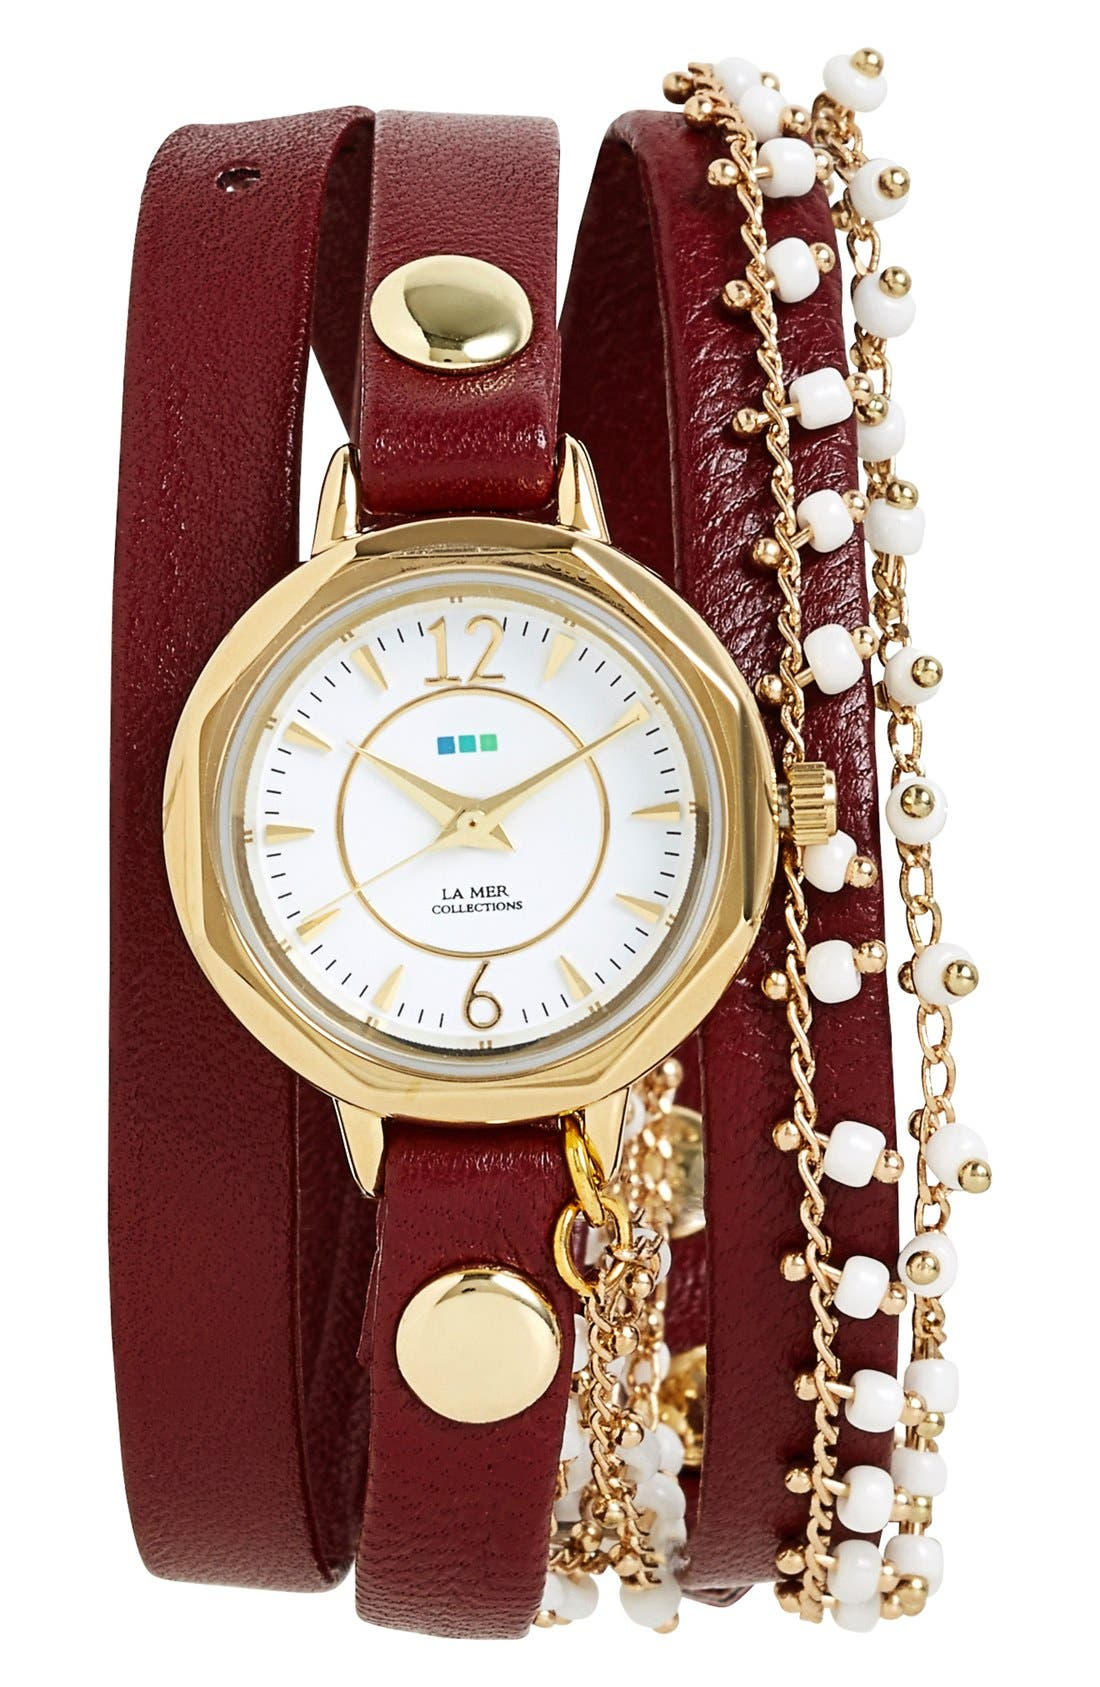 Main Image - La Mer Collections Beaded Chain & Leather Wrap Watch, 19mm